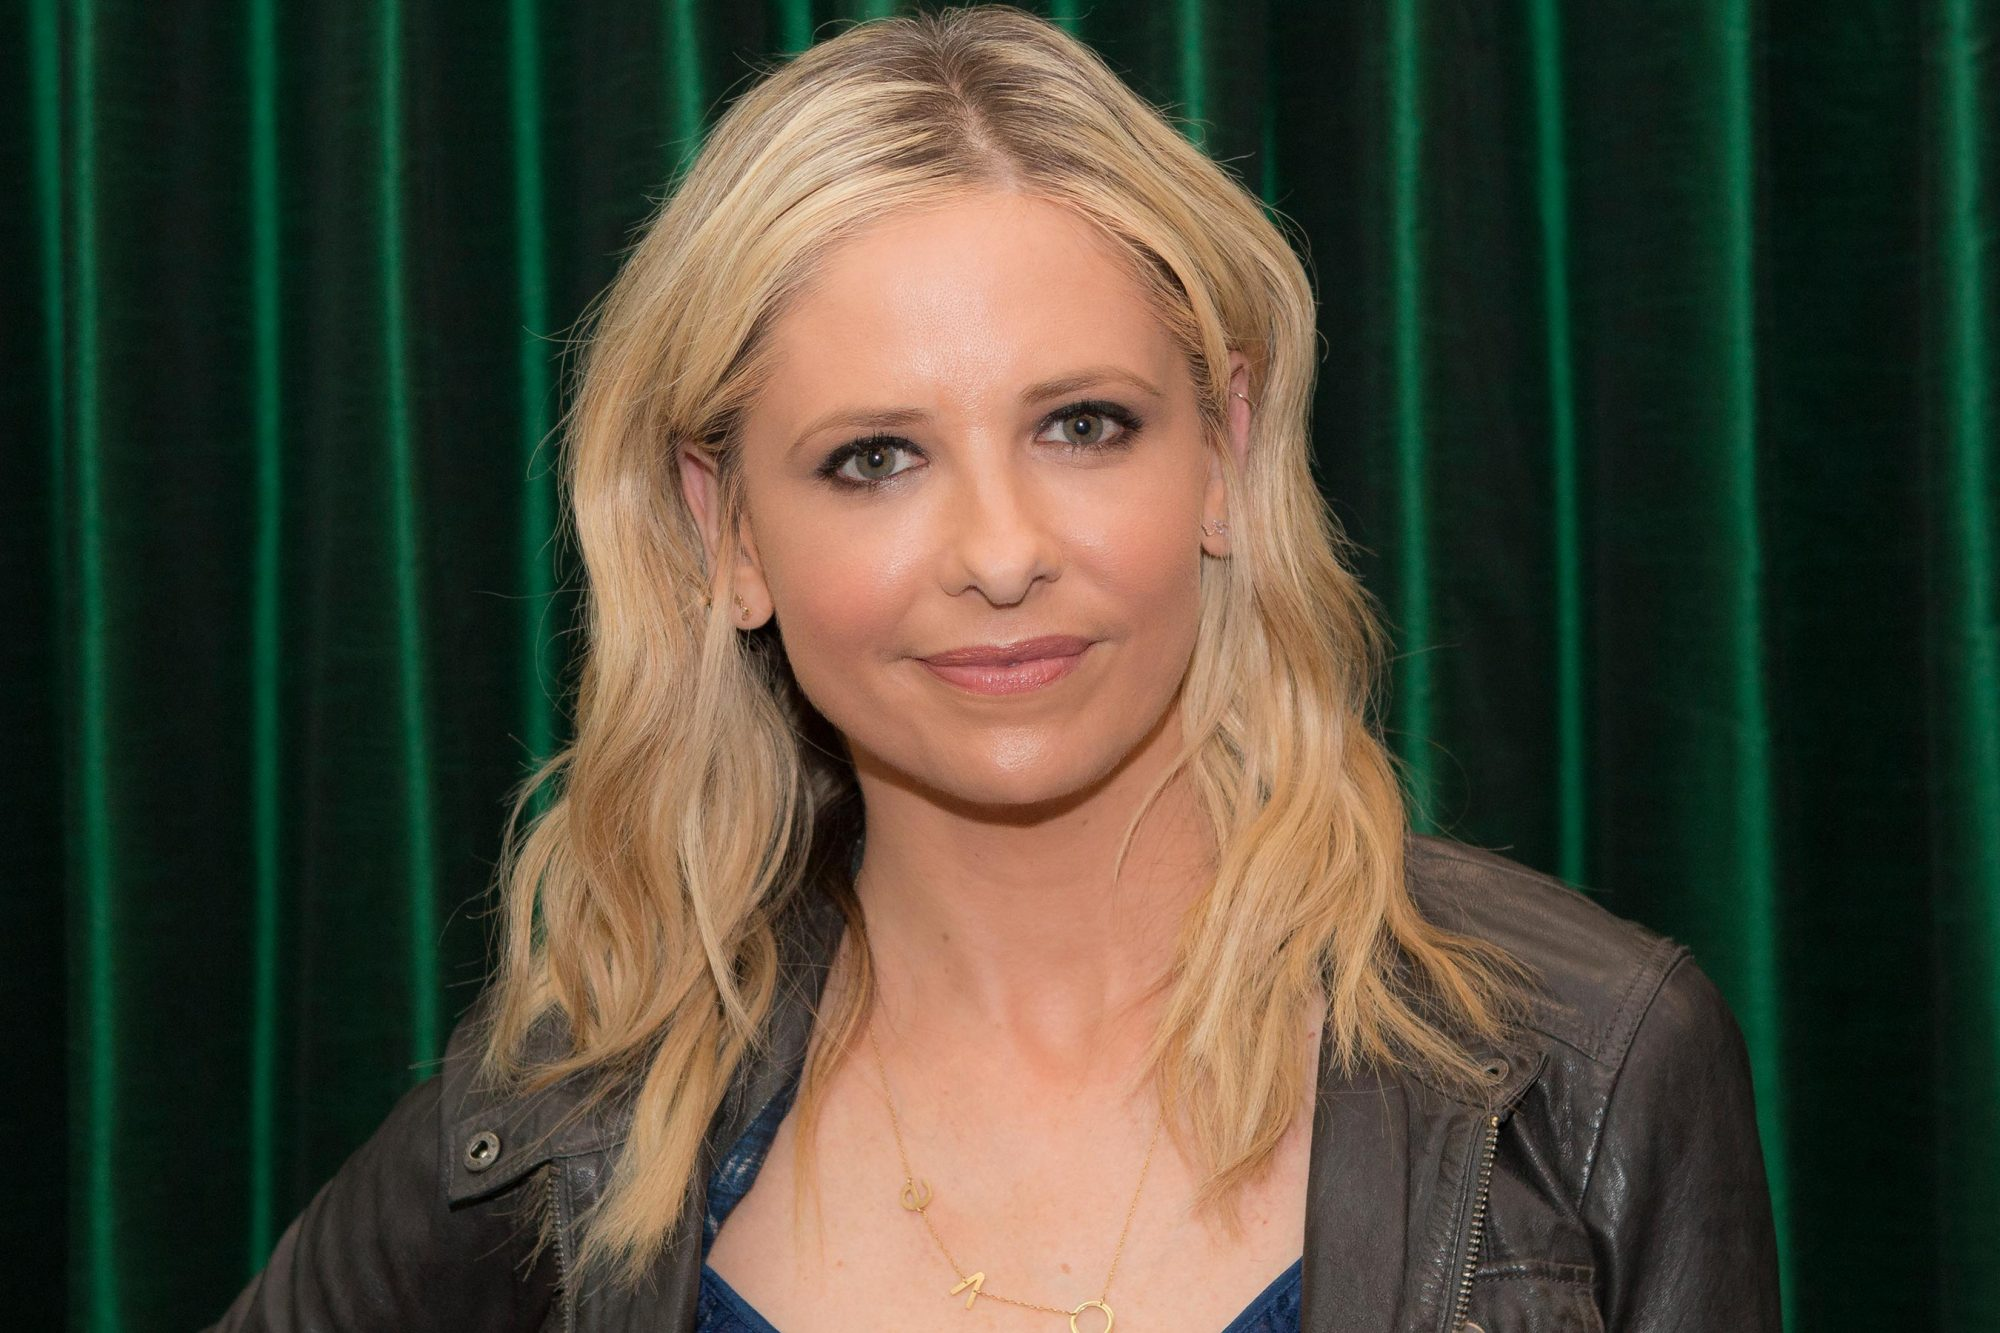 """Sarah Michelle Gellar Book Signing For """"Stirring Up Fun With Food: Over 115 Simple, Delicious Ways To Be Creative In The Kitchen"""""""